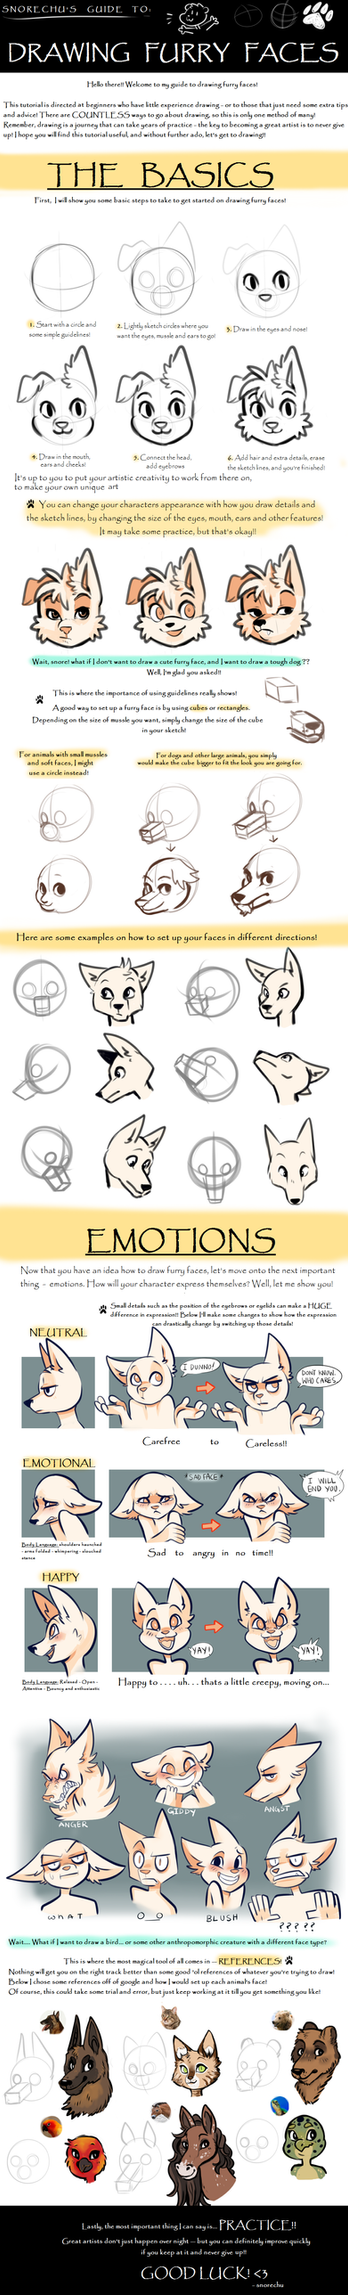 Guide to Drawing Furry Faces 2.0 by Snorechu